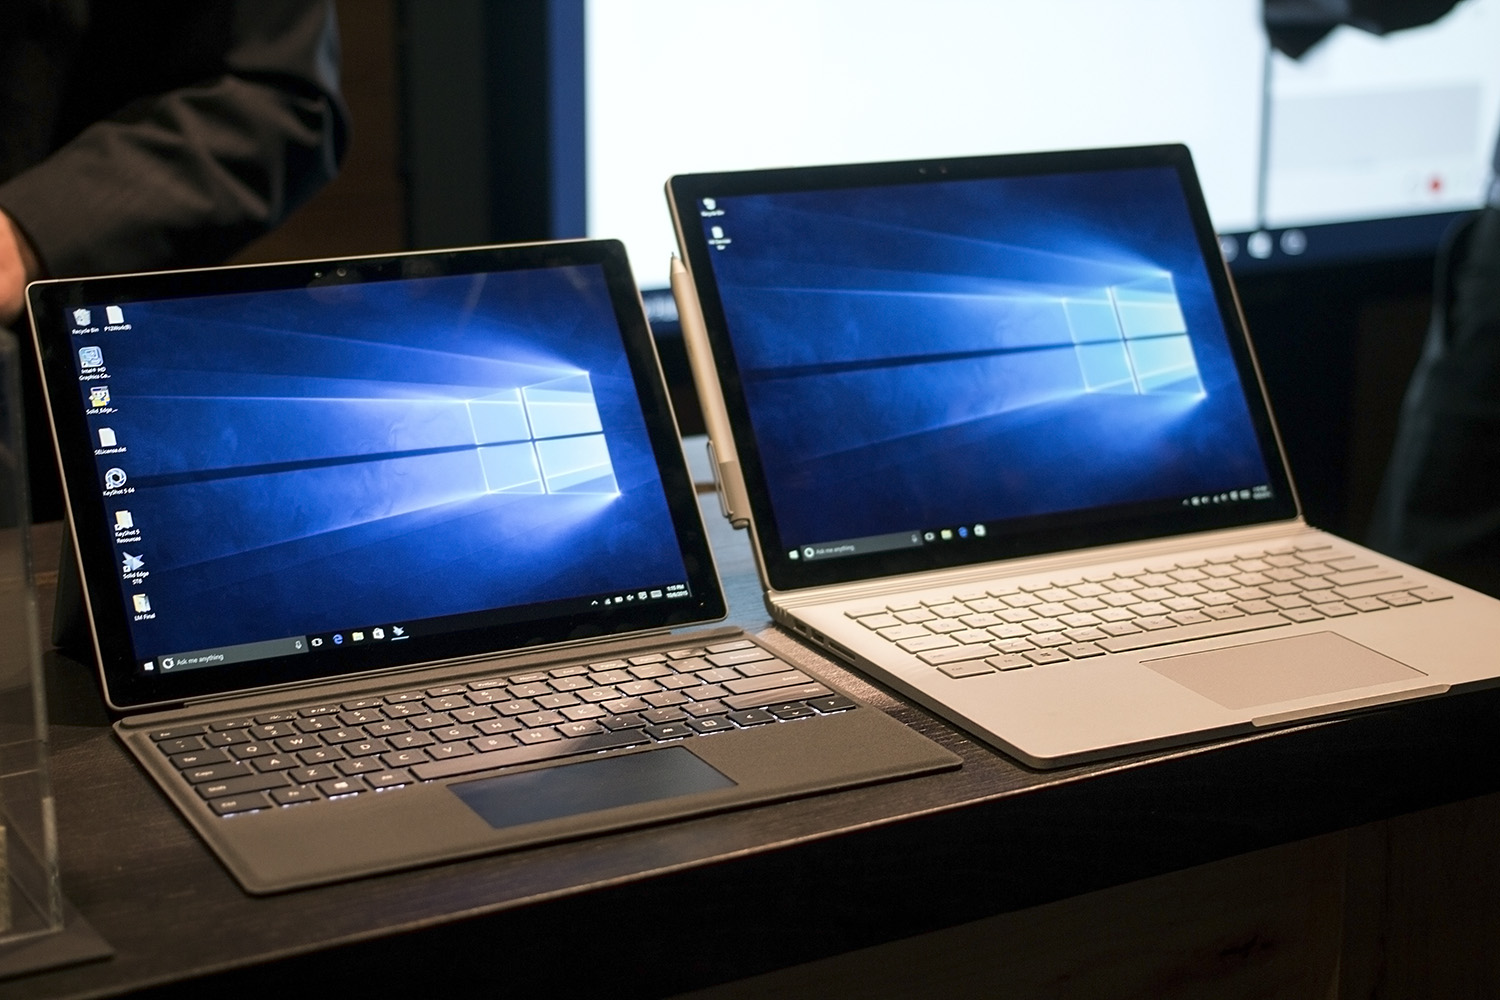 PC sales just hit a 10 year low